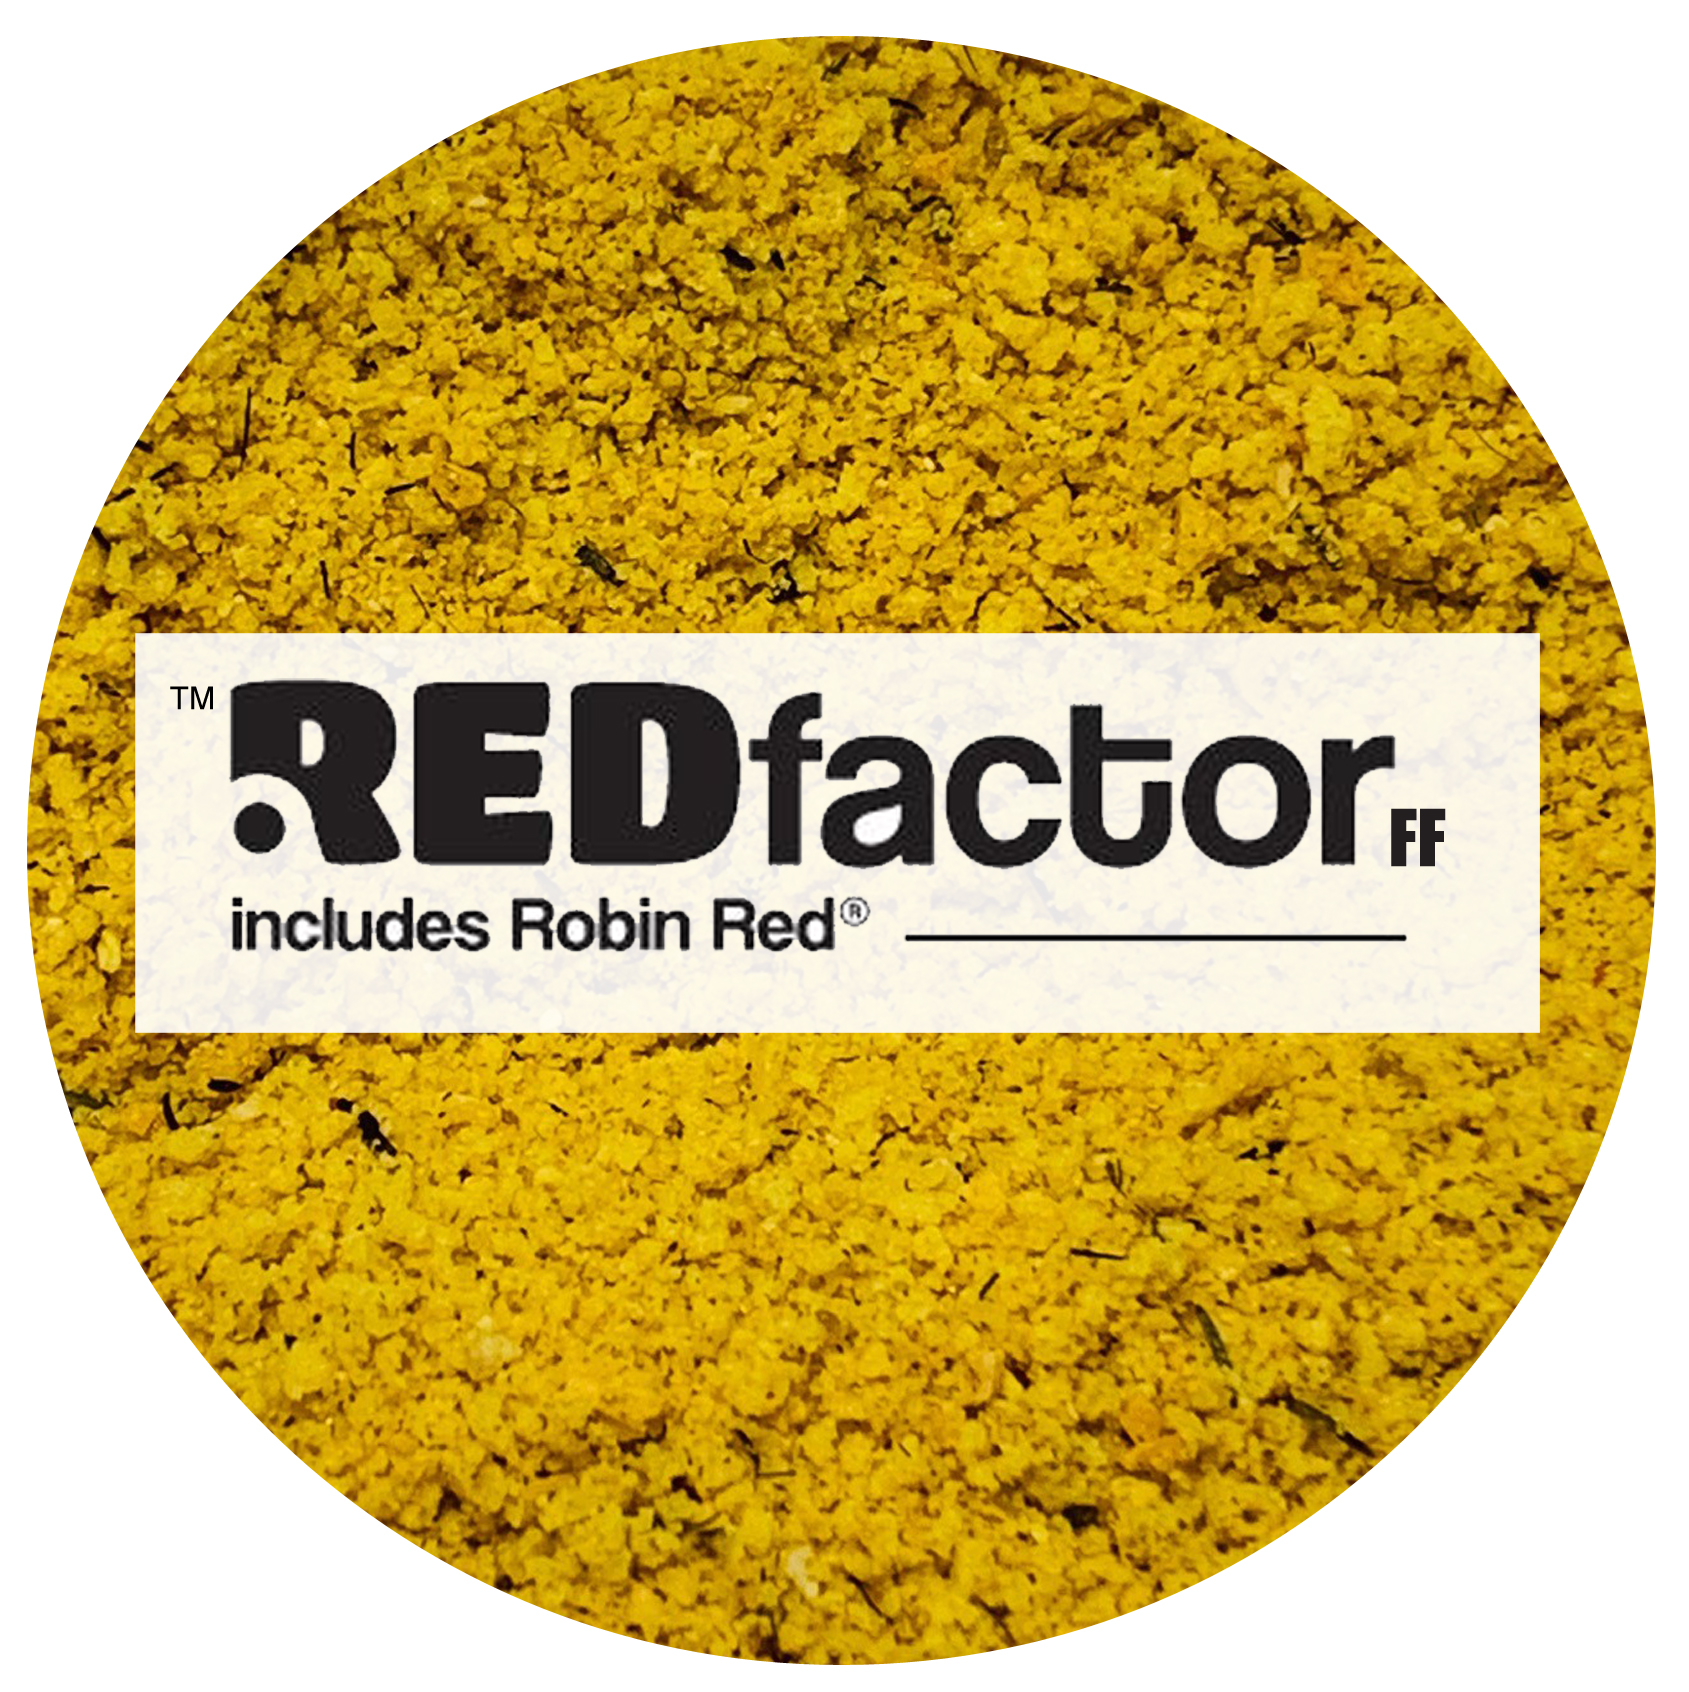 Red Factor™ FF 20kg